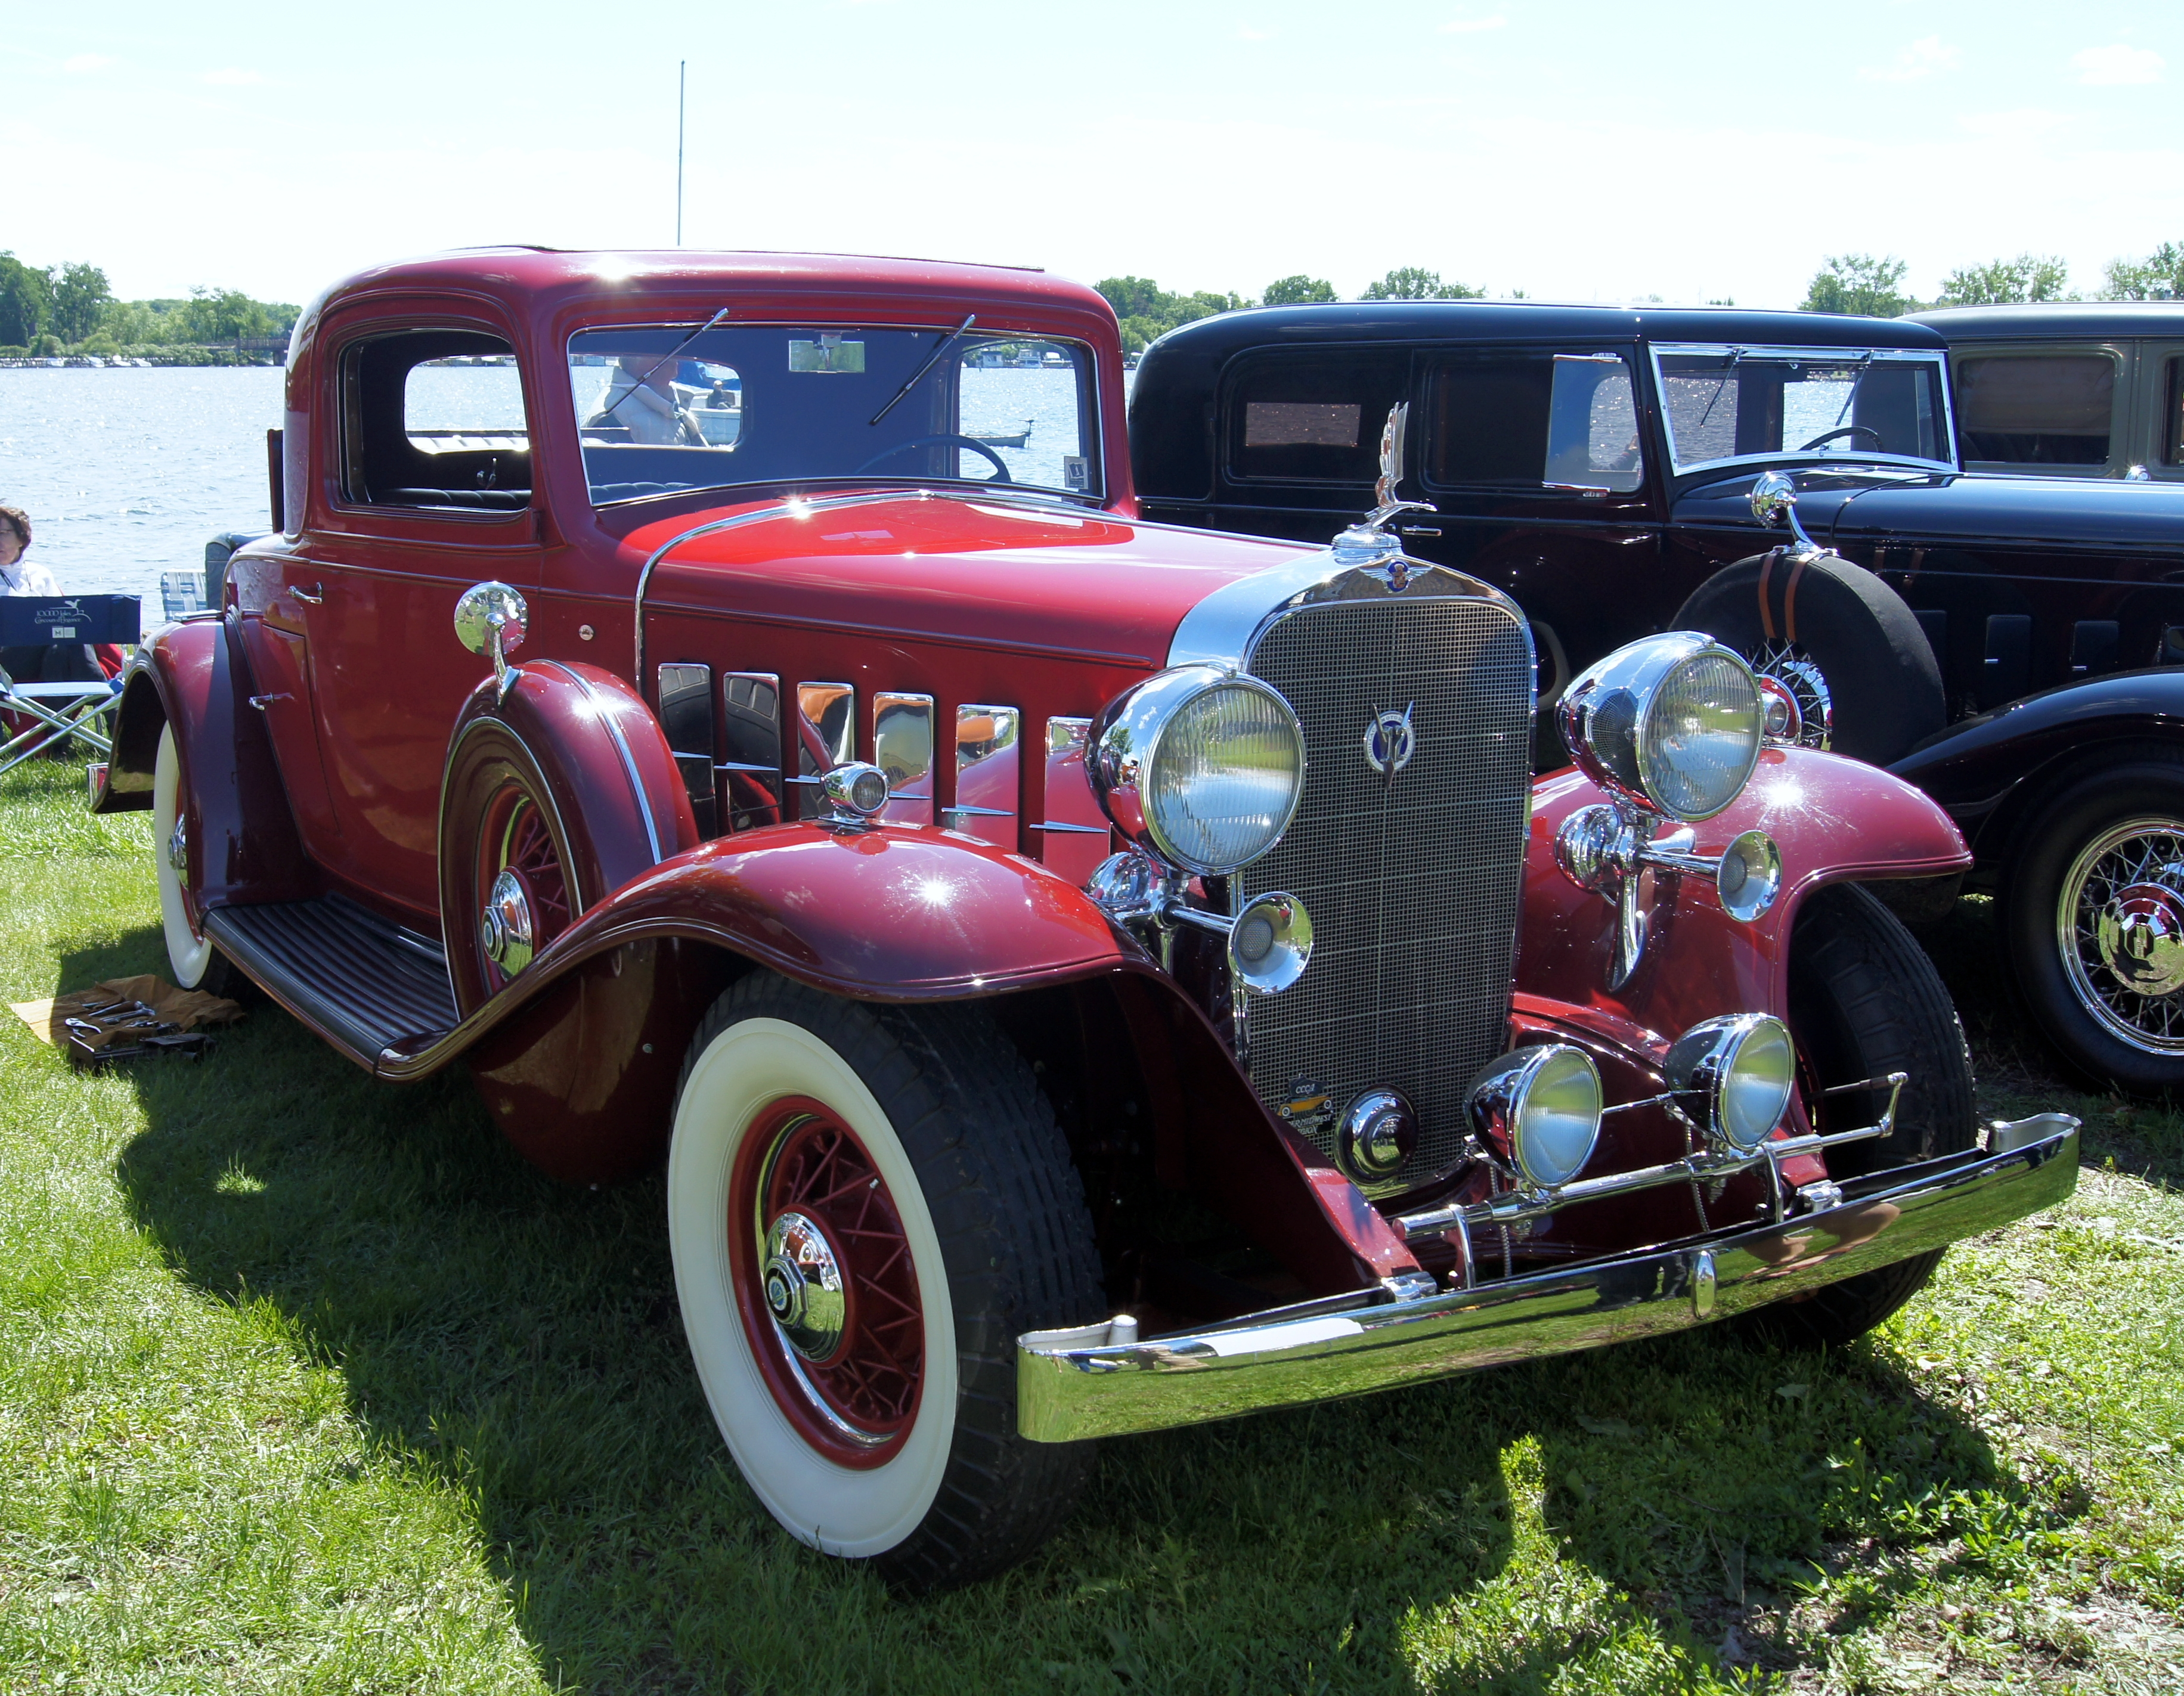 File:32 Cadillac Coupe (8942776960).jpg - Wikimedia Commons